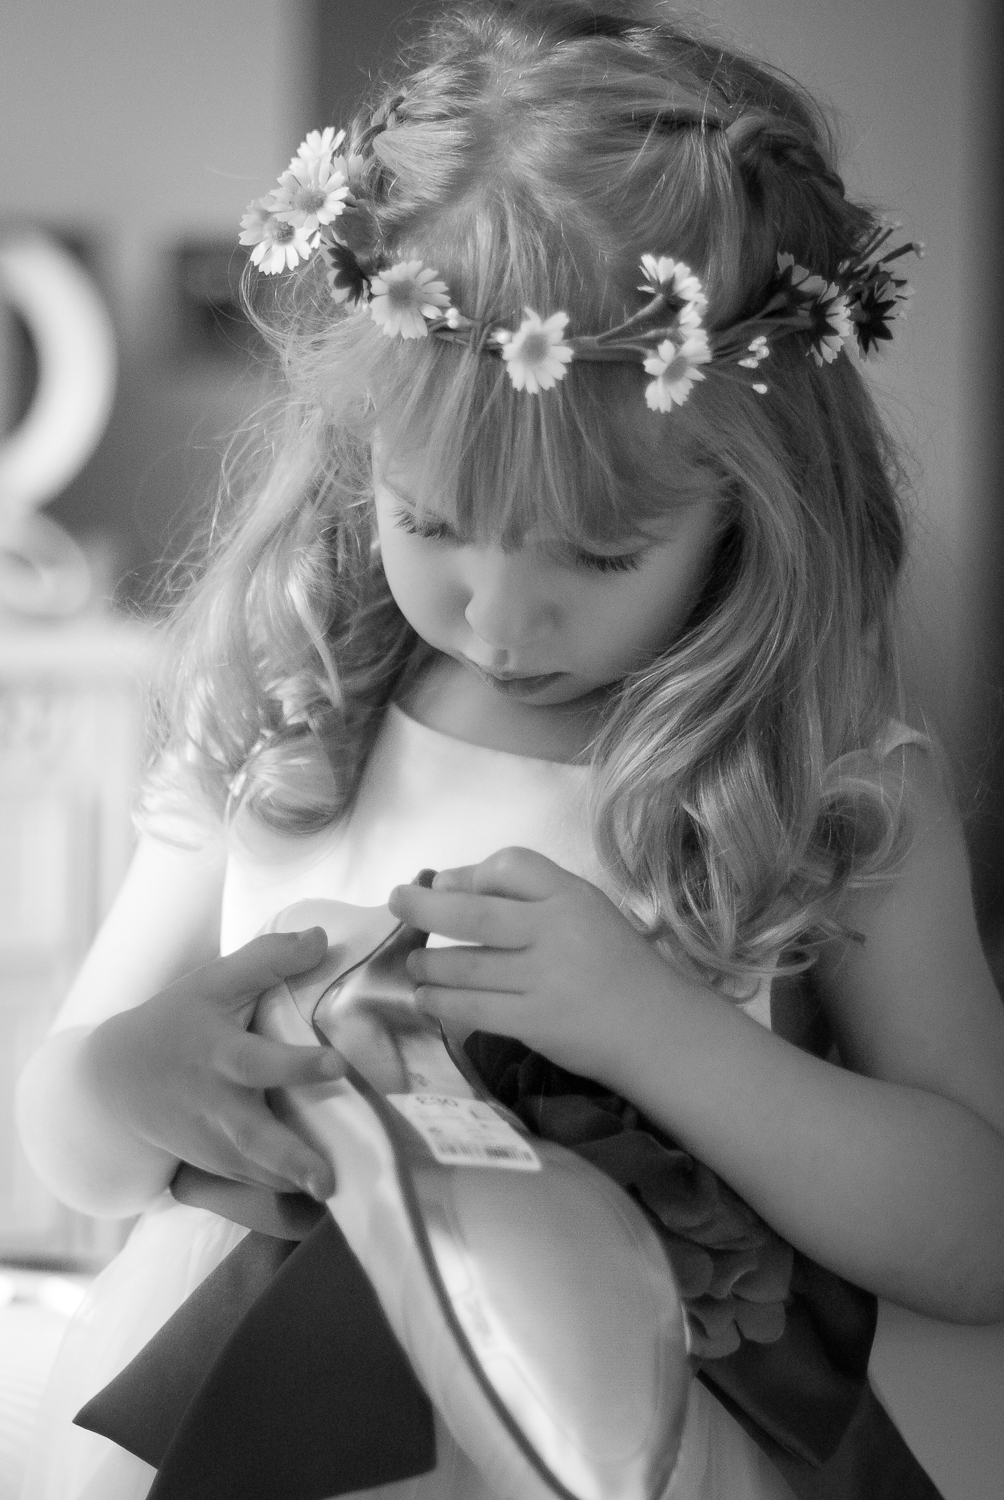 Photograph of a child bridesmaid examining her Mum's wedding shoe